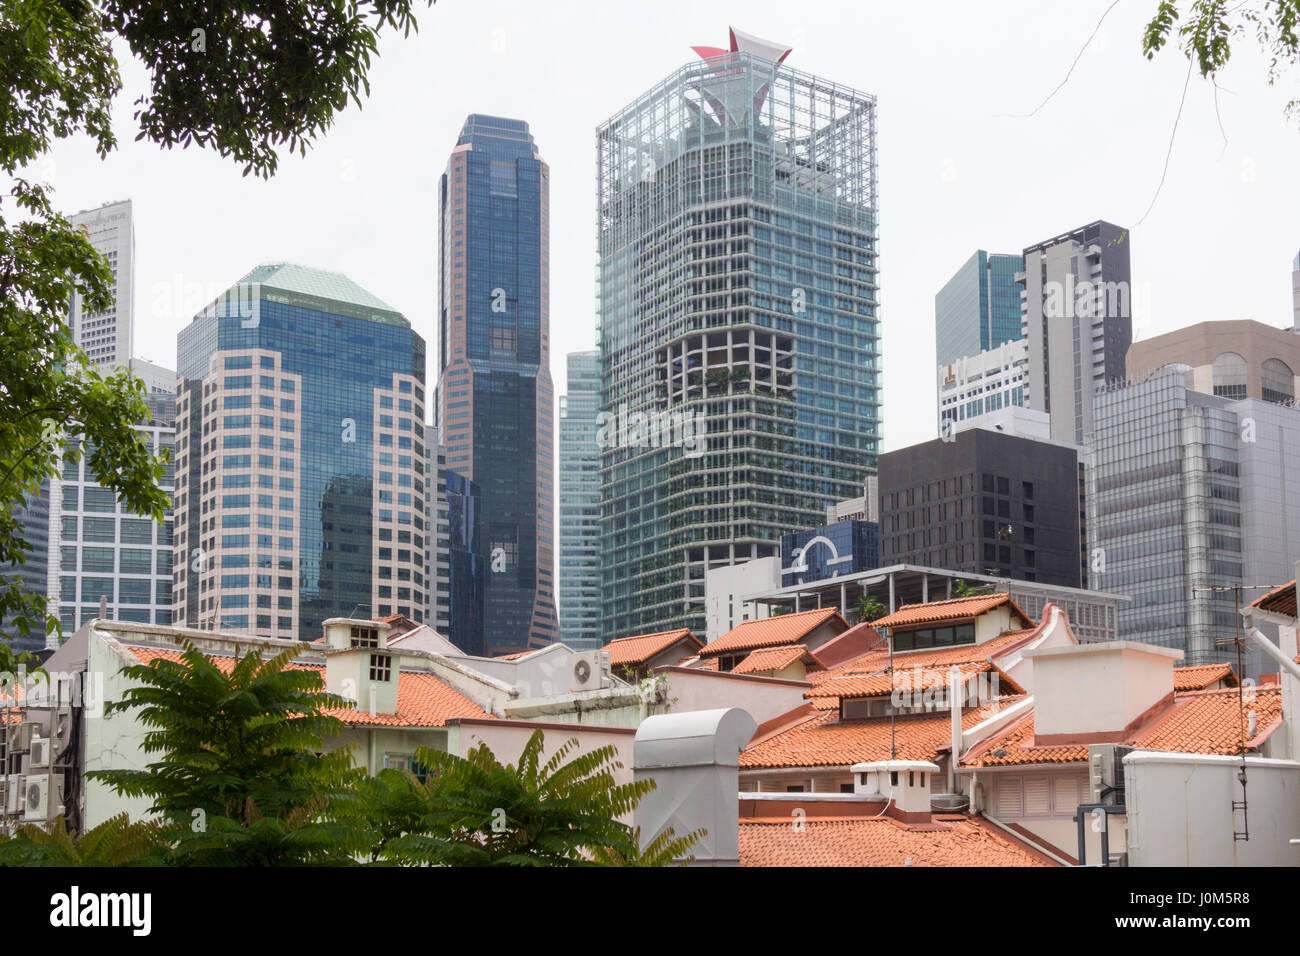 Old tiled roofs and modern architecture, Ann Siang Hill, Singapore - Stock Image